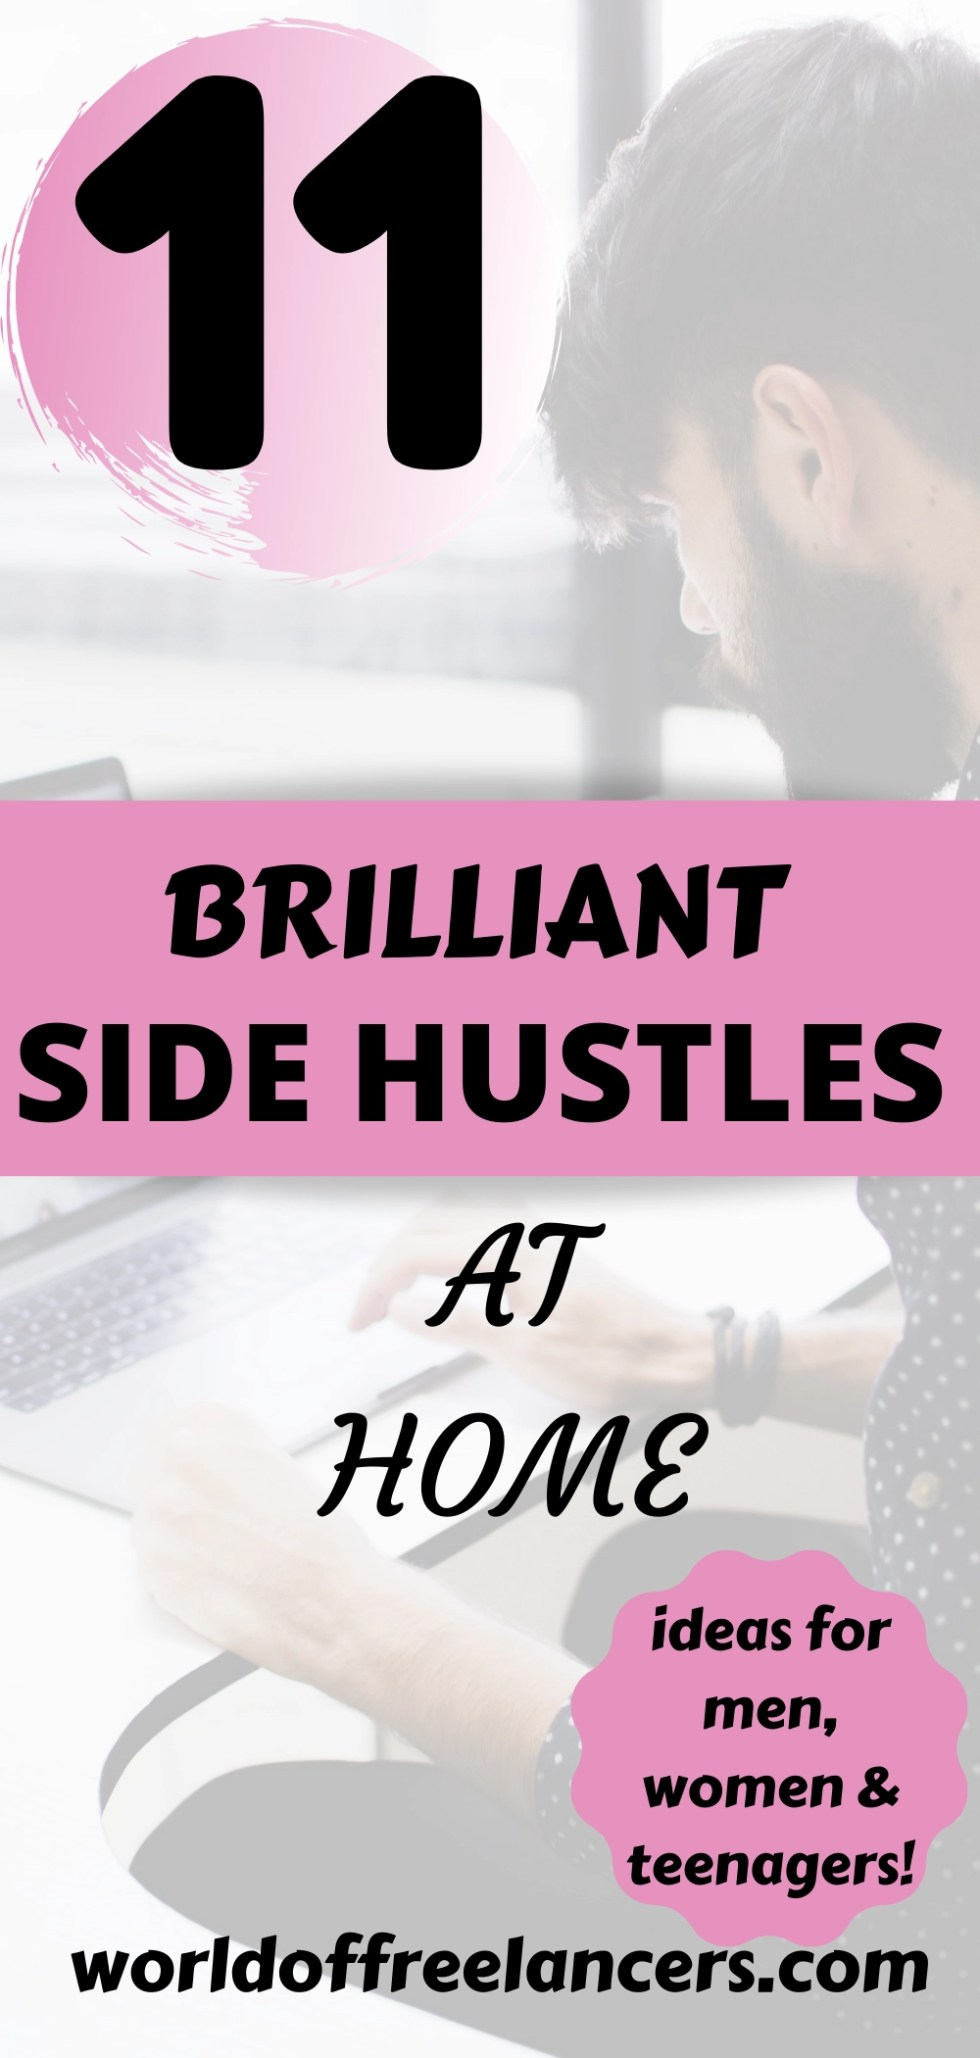 11 brilliant side hustles at home for men, women and teenagers